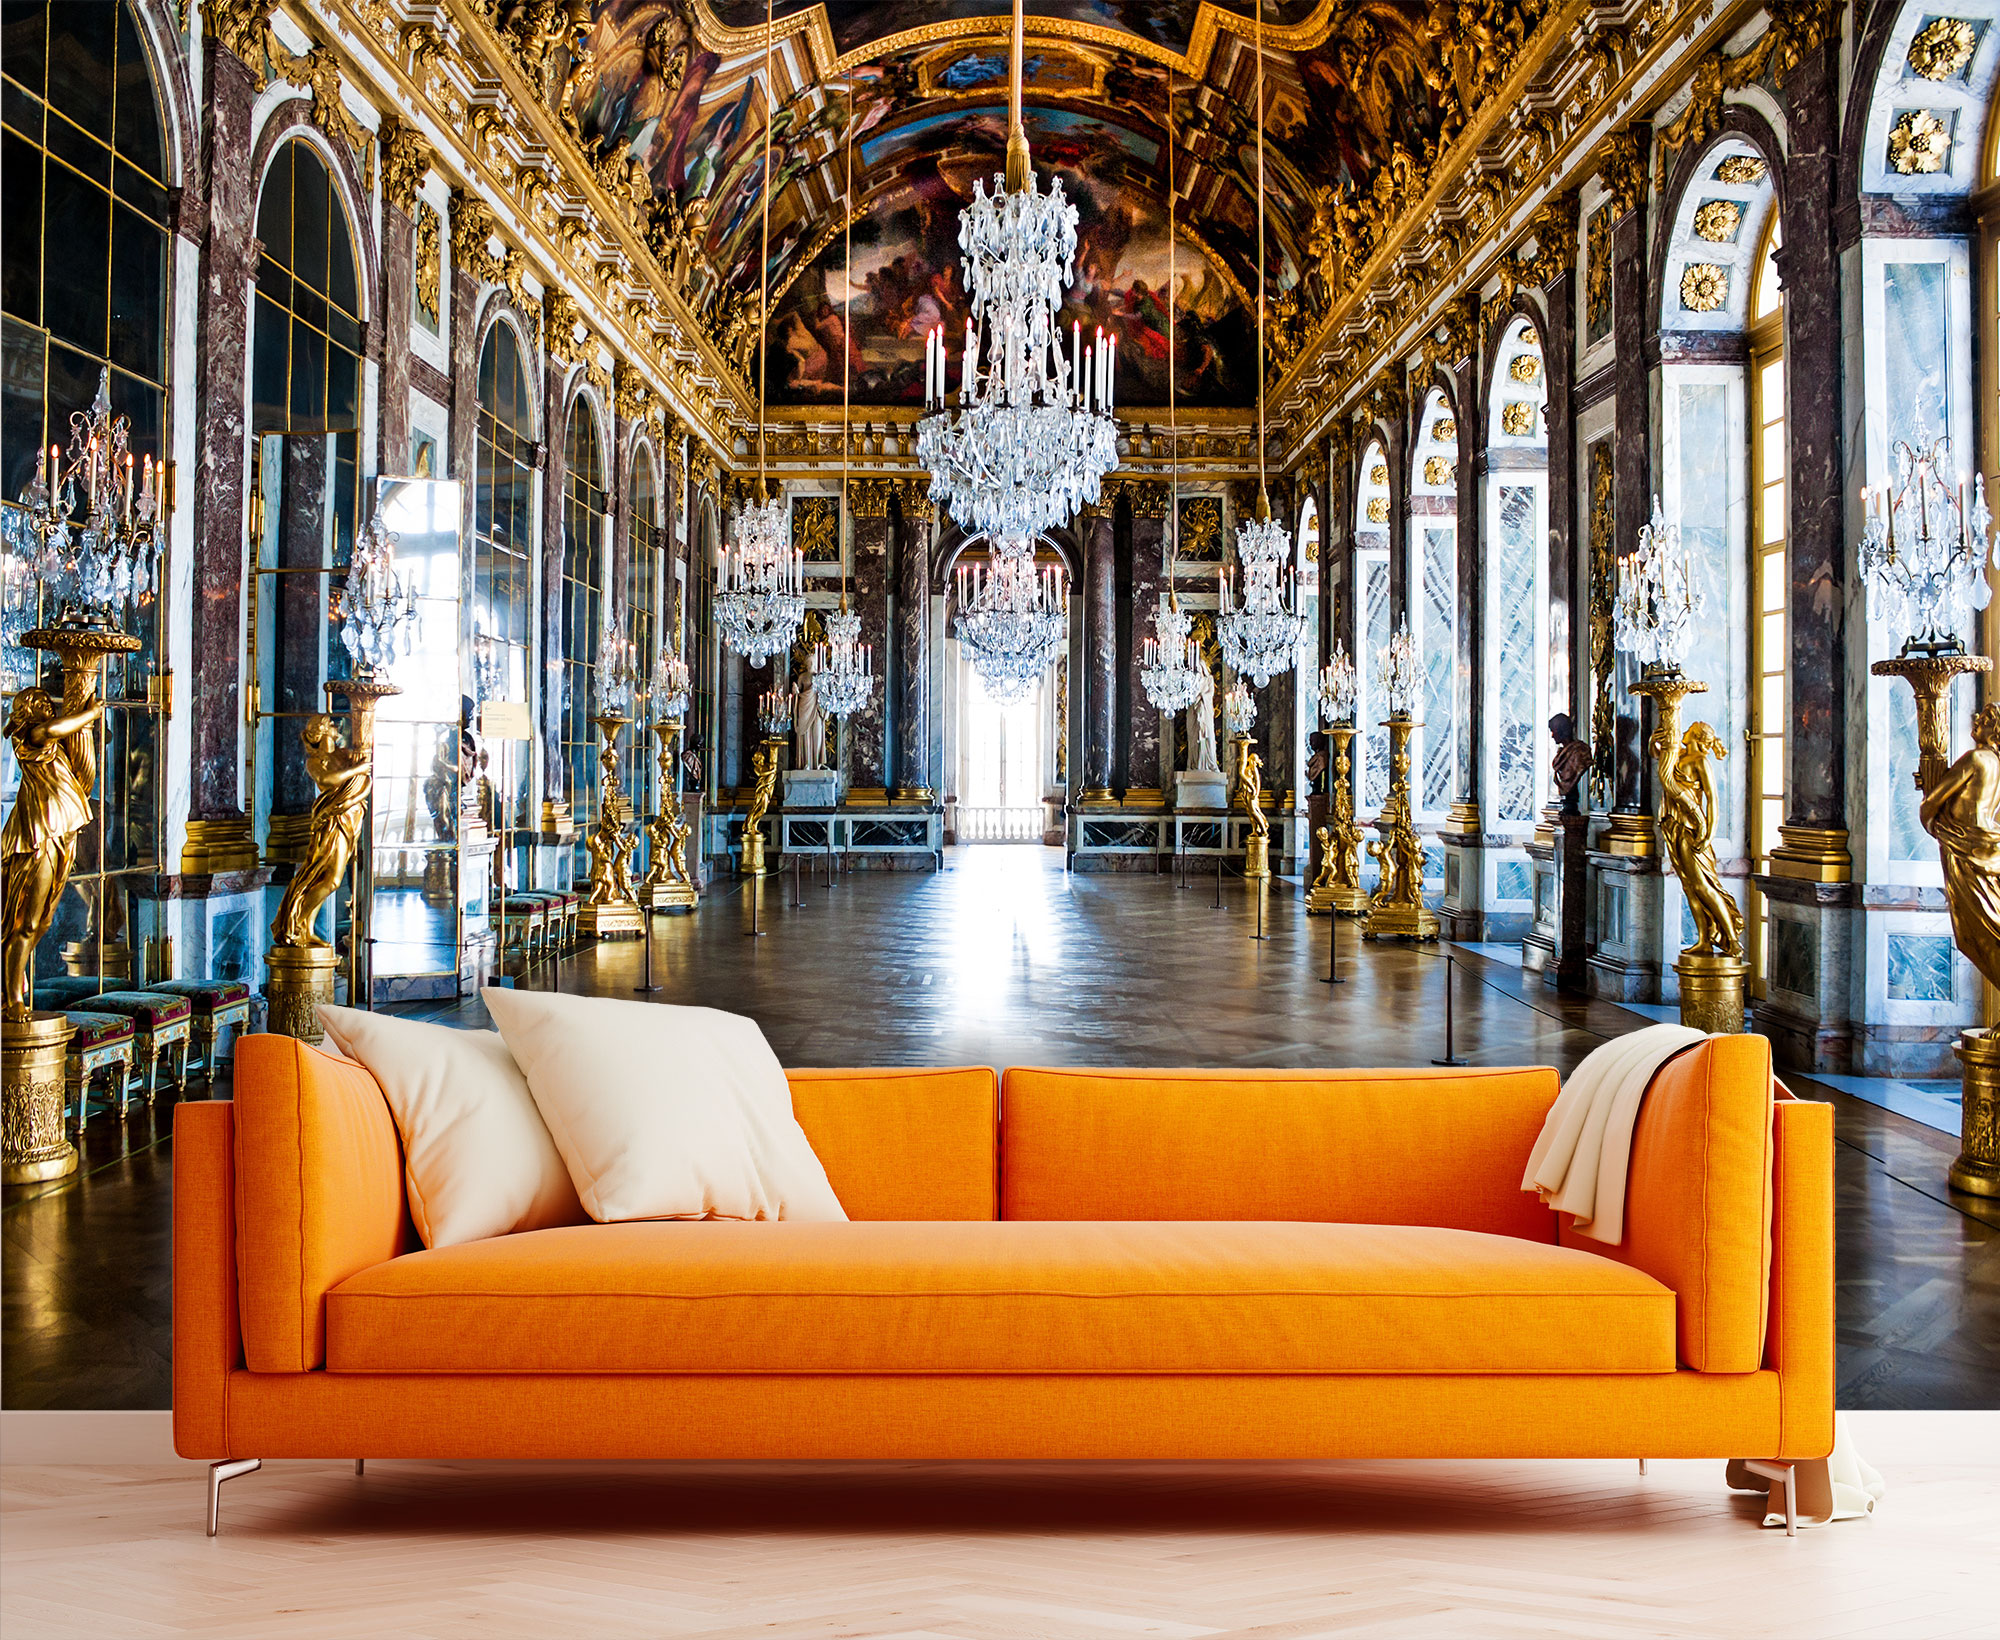 Hall Of Mirrors Palace Of Versailles Wallpaper Mural